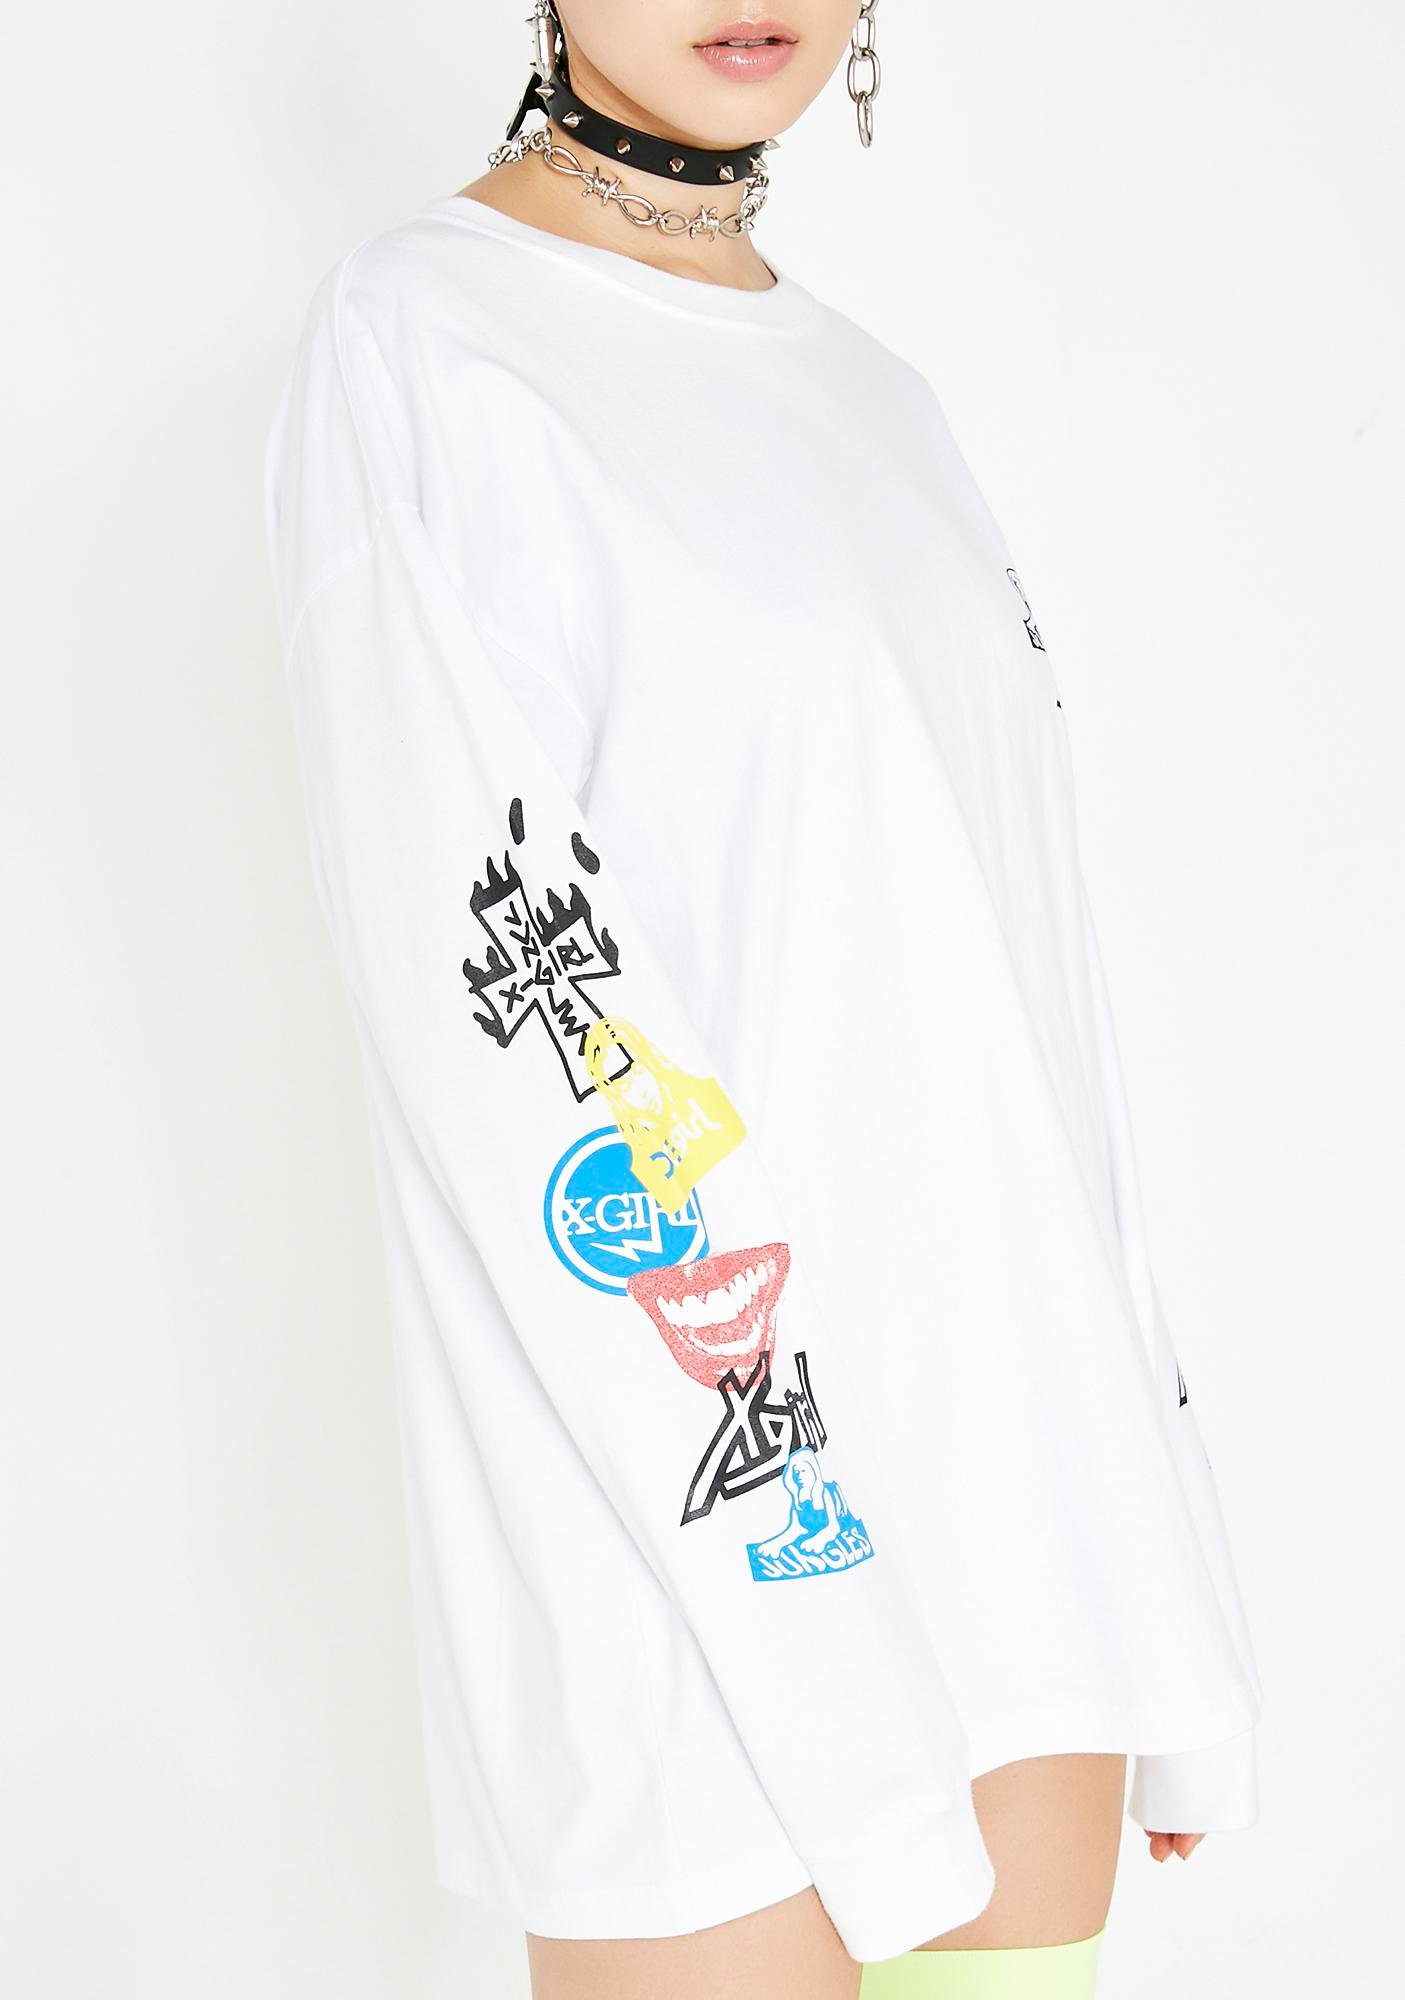 x-Girl x Jungles Sticker Slap Long Sleeve Tee